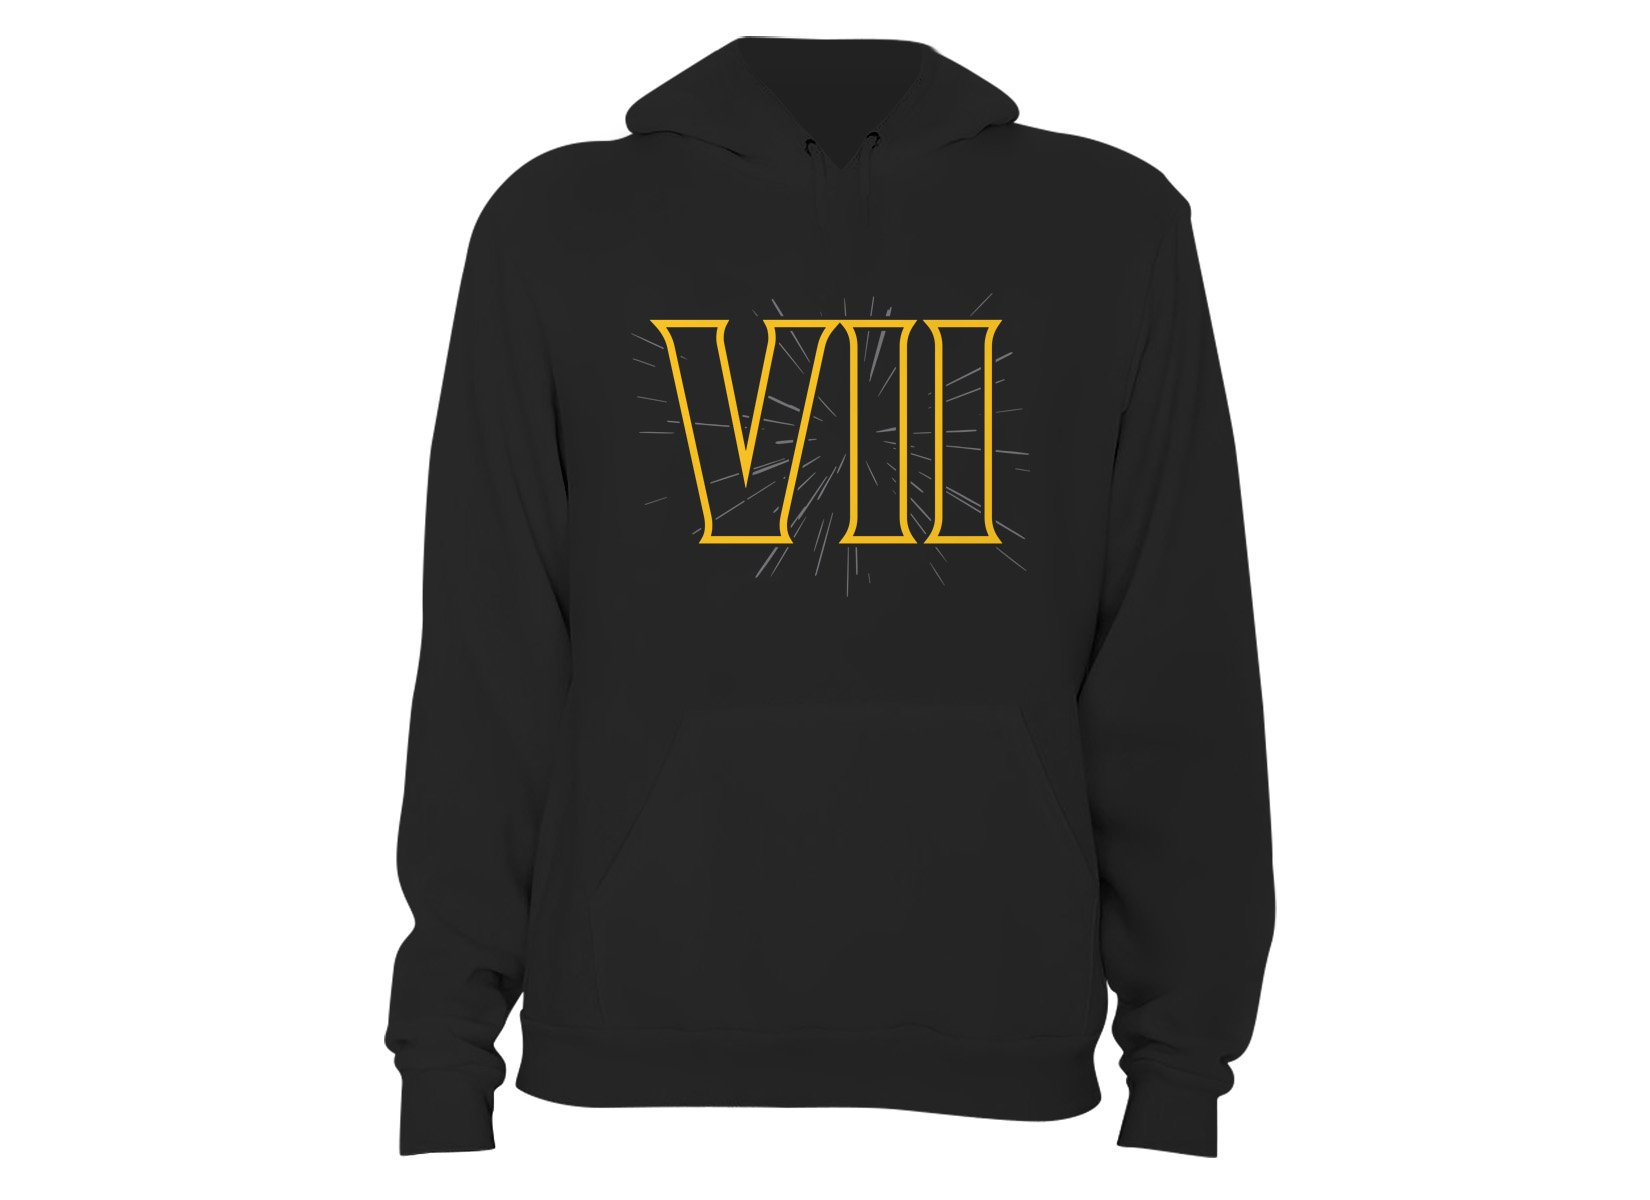 Episode VII on Hoodie